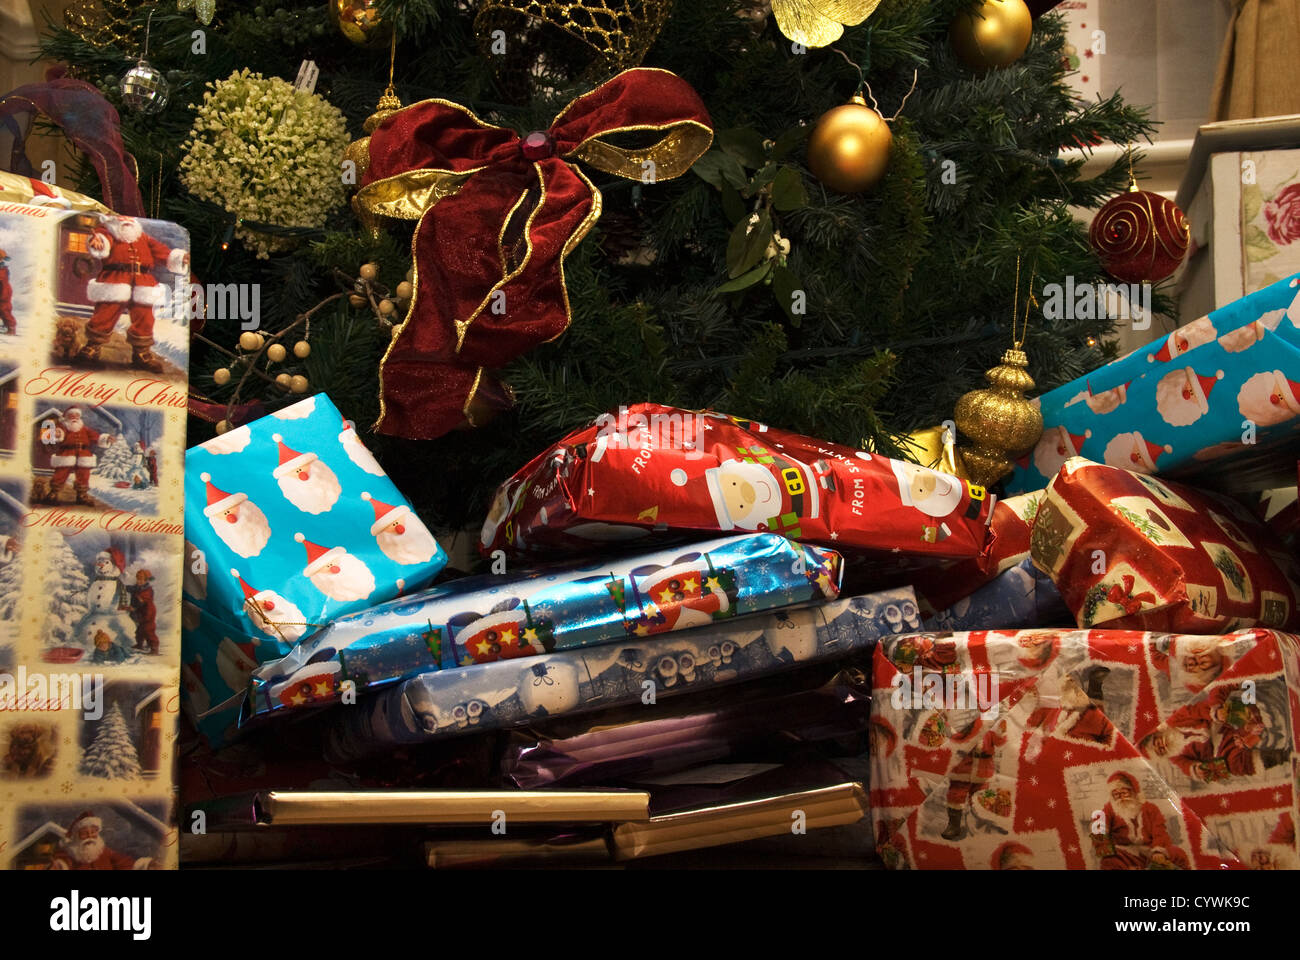 Christmas presents underneath a Christmas tree - Stock Image